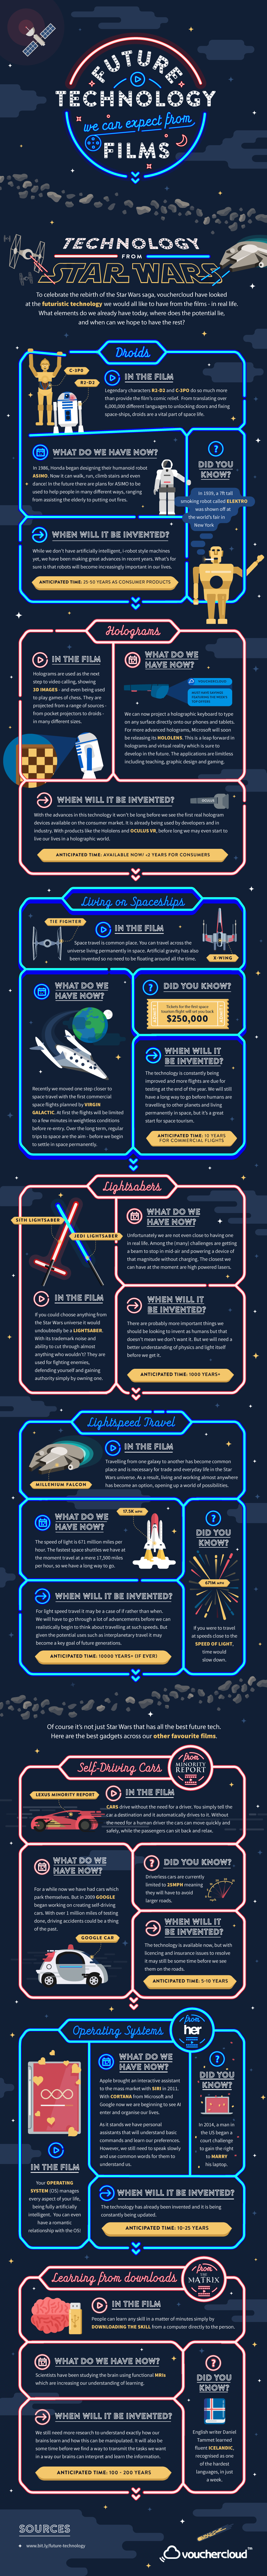 Future Technology Infographic